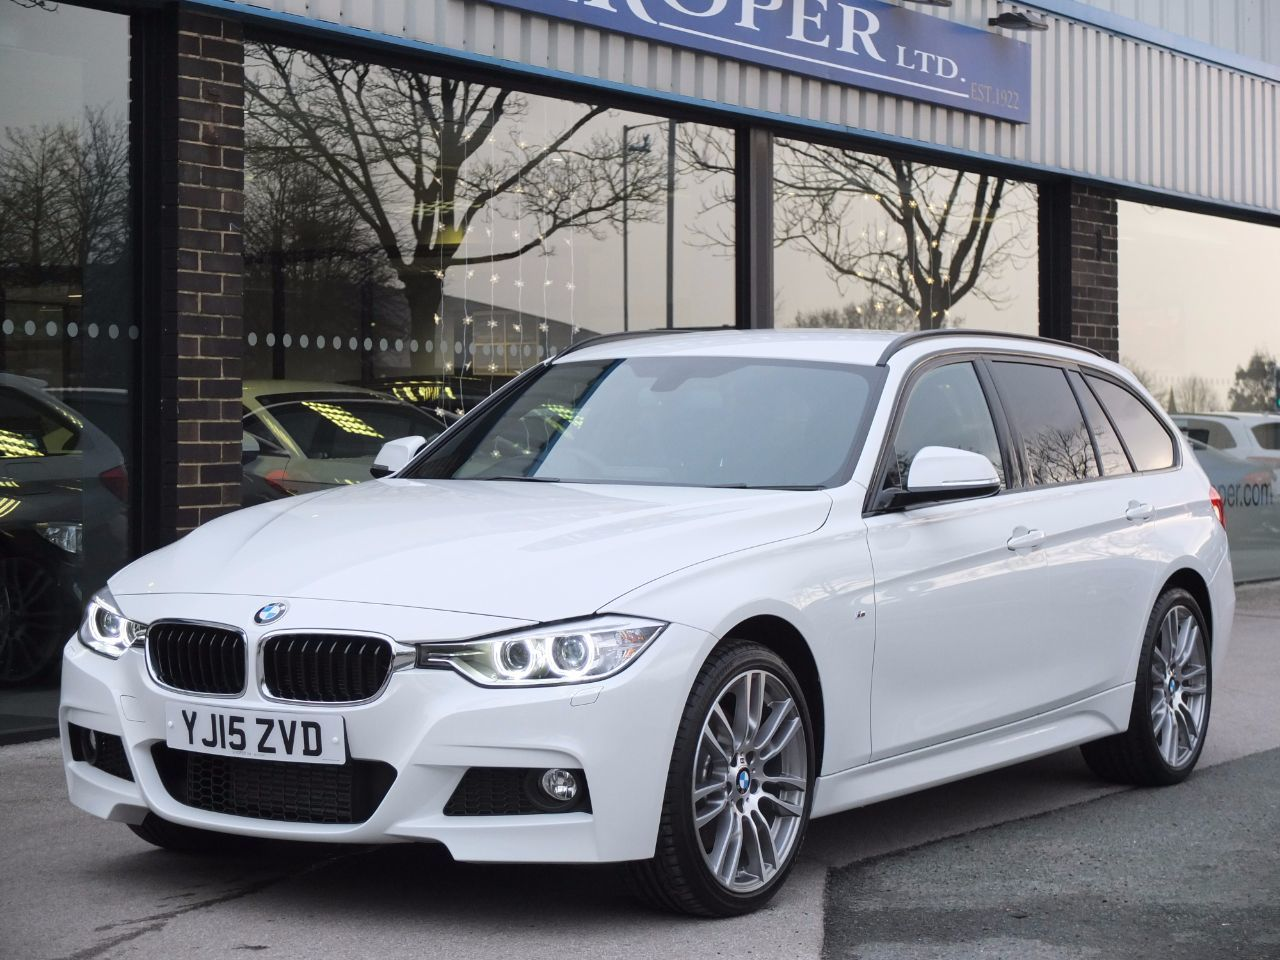 BMW 3 Series 2.0 320d xDrive M Sport Touring Auto (M Sport Plus and Media Packs) Estate Diesel Alpine WhiteBMW 3 Series 2.0 320d xDrive M Sport Touring Auto (M Sport Plus and Media Packs) Estate Diesel Alpine White at fa Roper Ltd Bradford